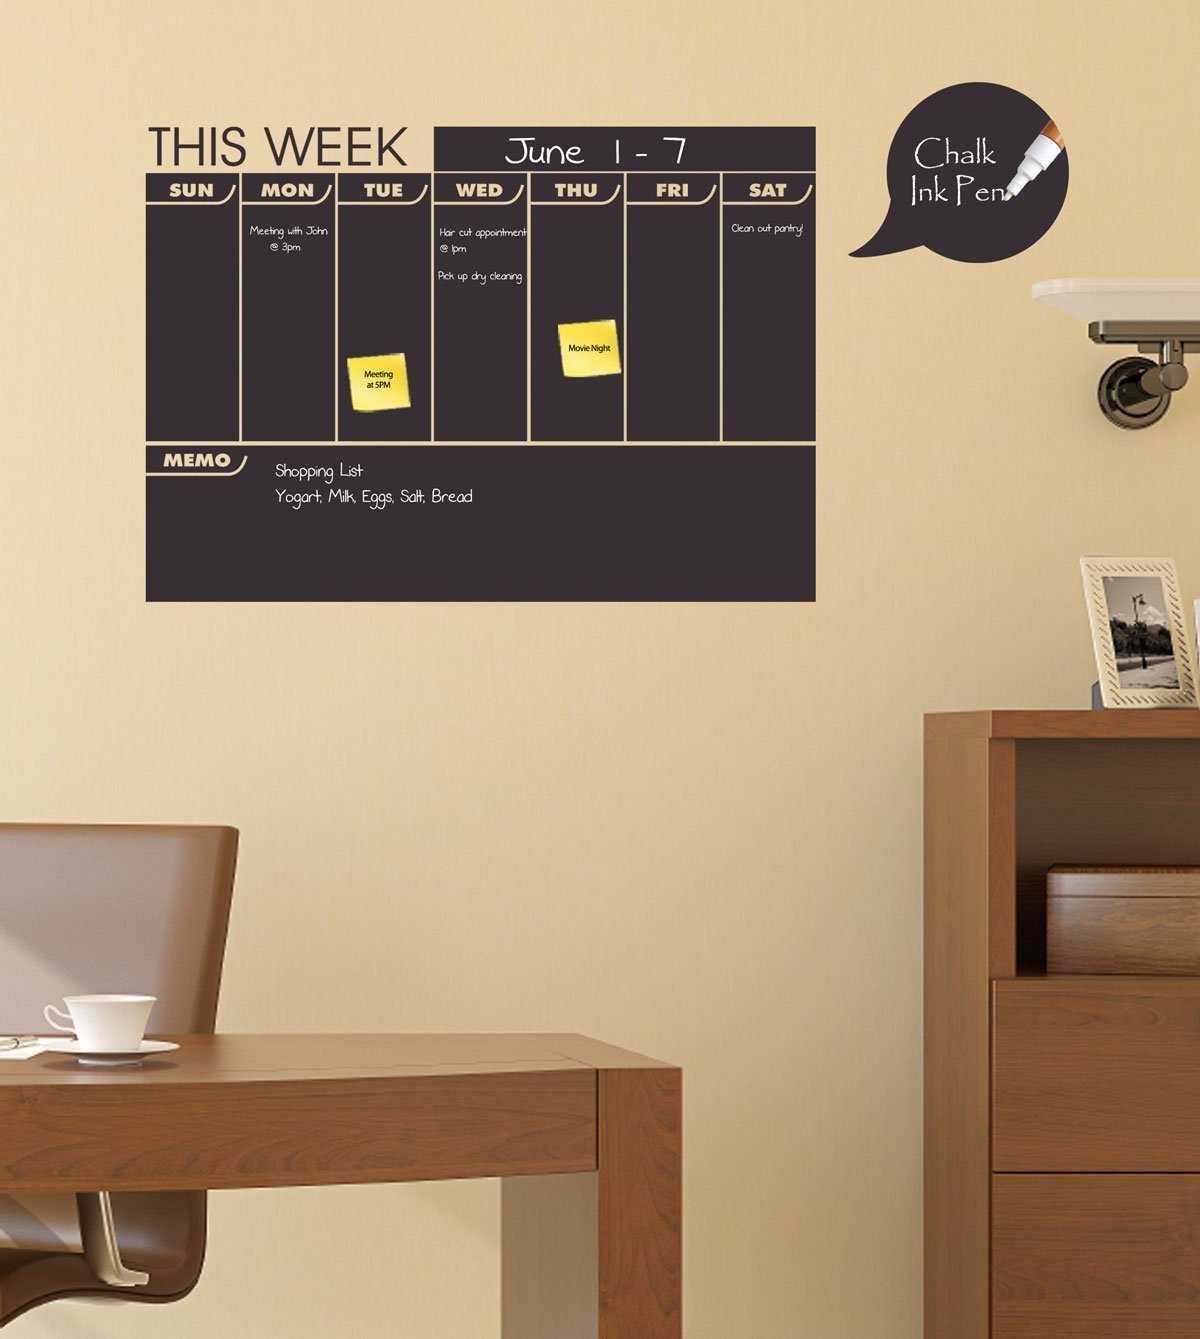 Weekly Chalkboard Calendar with Memo Area - Monthly Planner